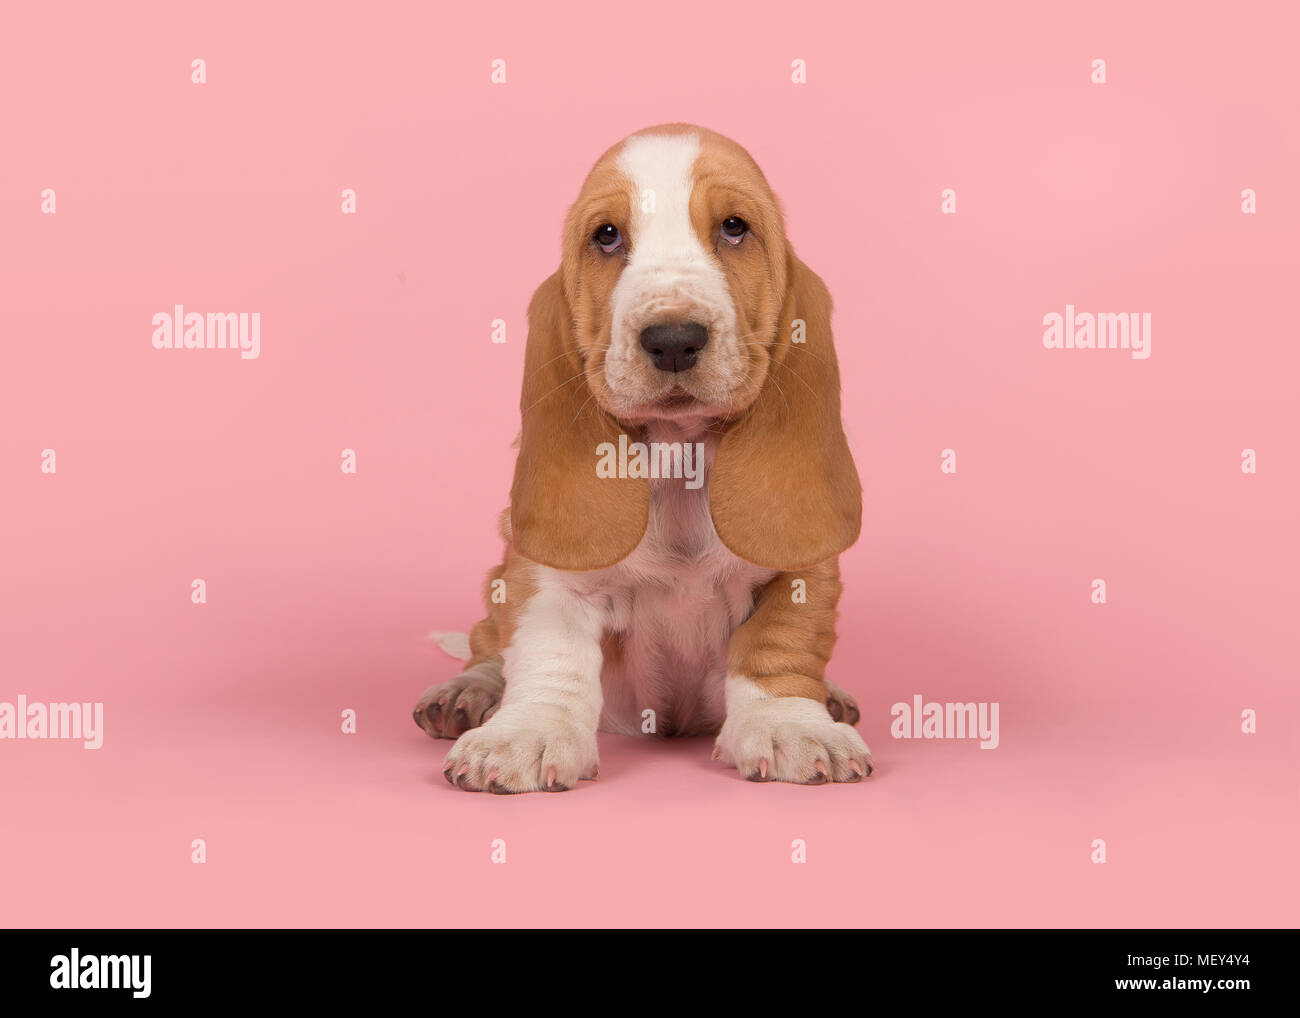 cute tan and white basset hound puppy sitting on a pink background